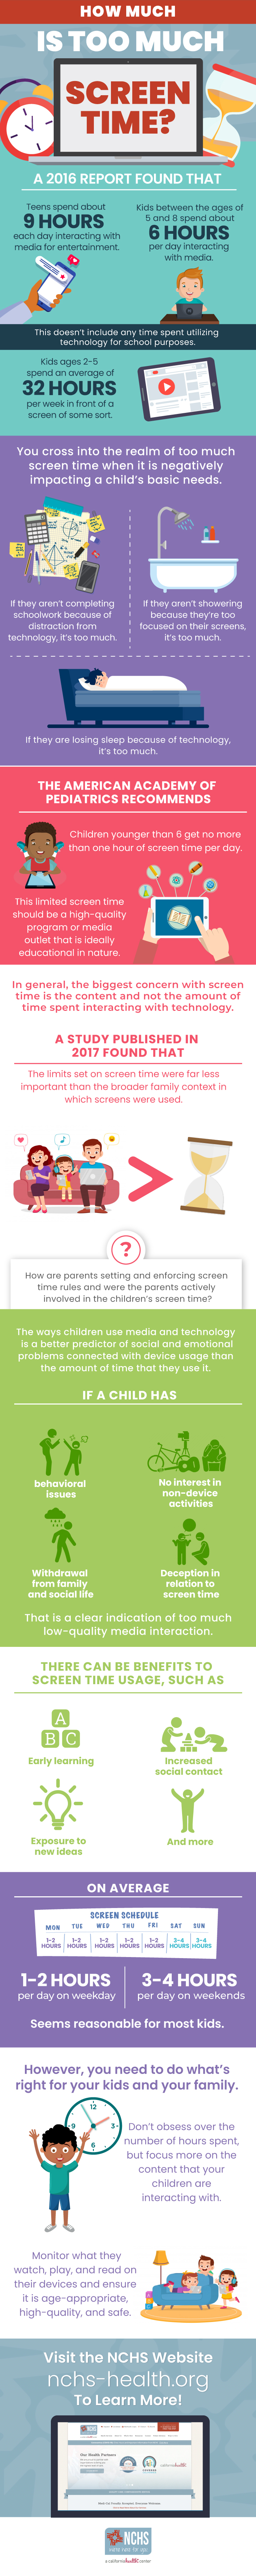 How Much Screen Time Should Kids Get? - Infographic